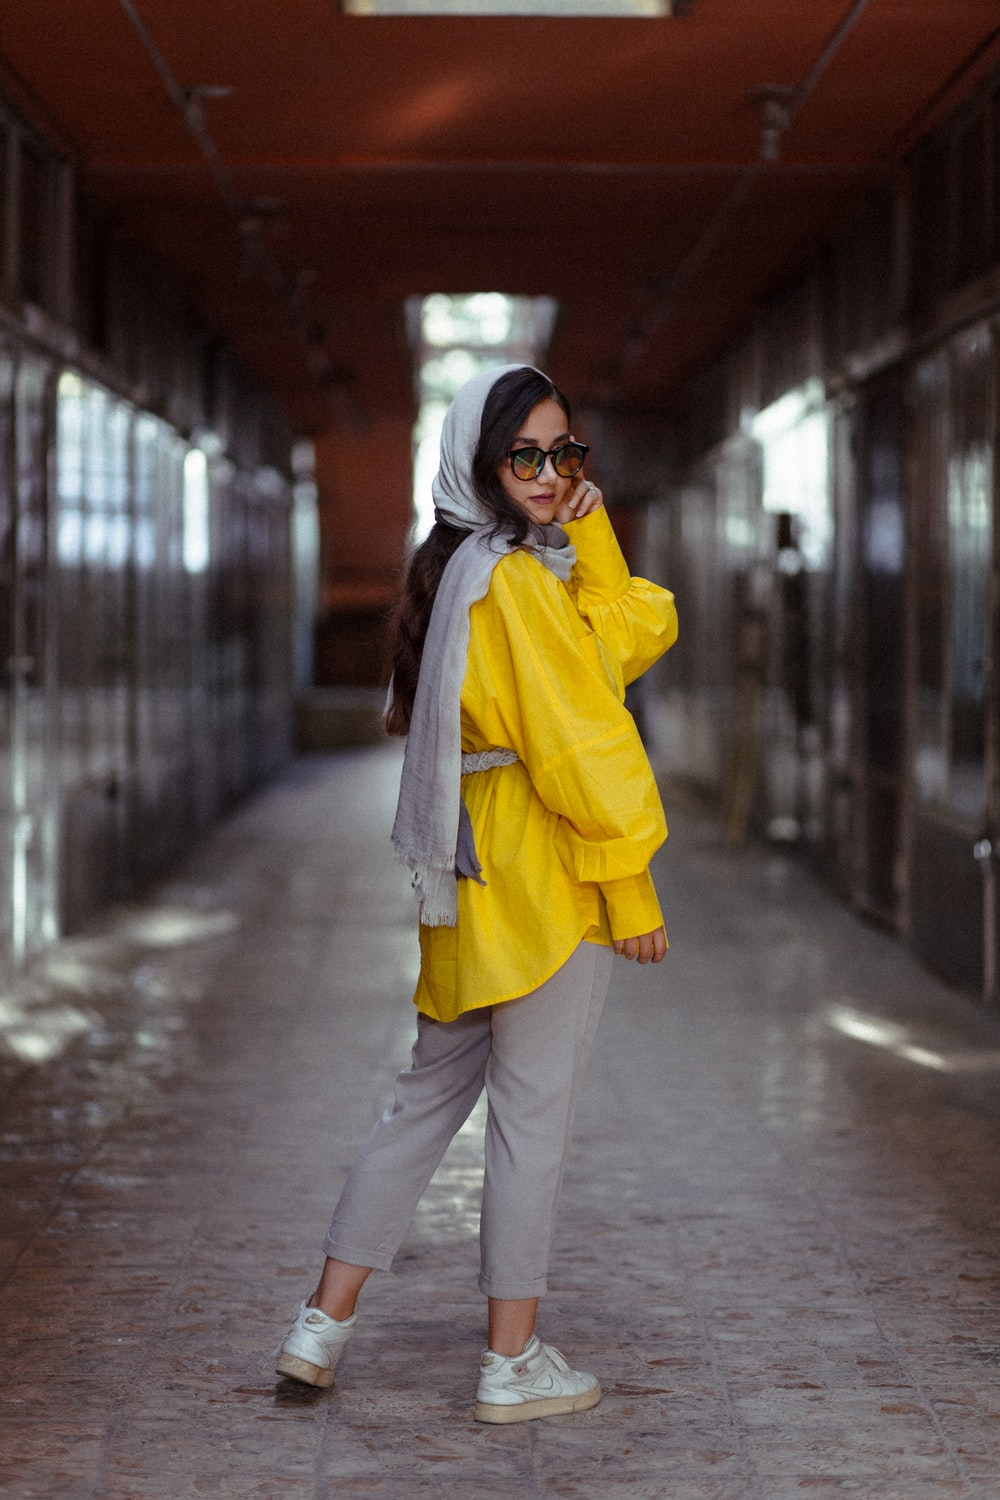 woman in yellow coat and black pants standing on sidewalk during daytime